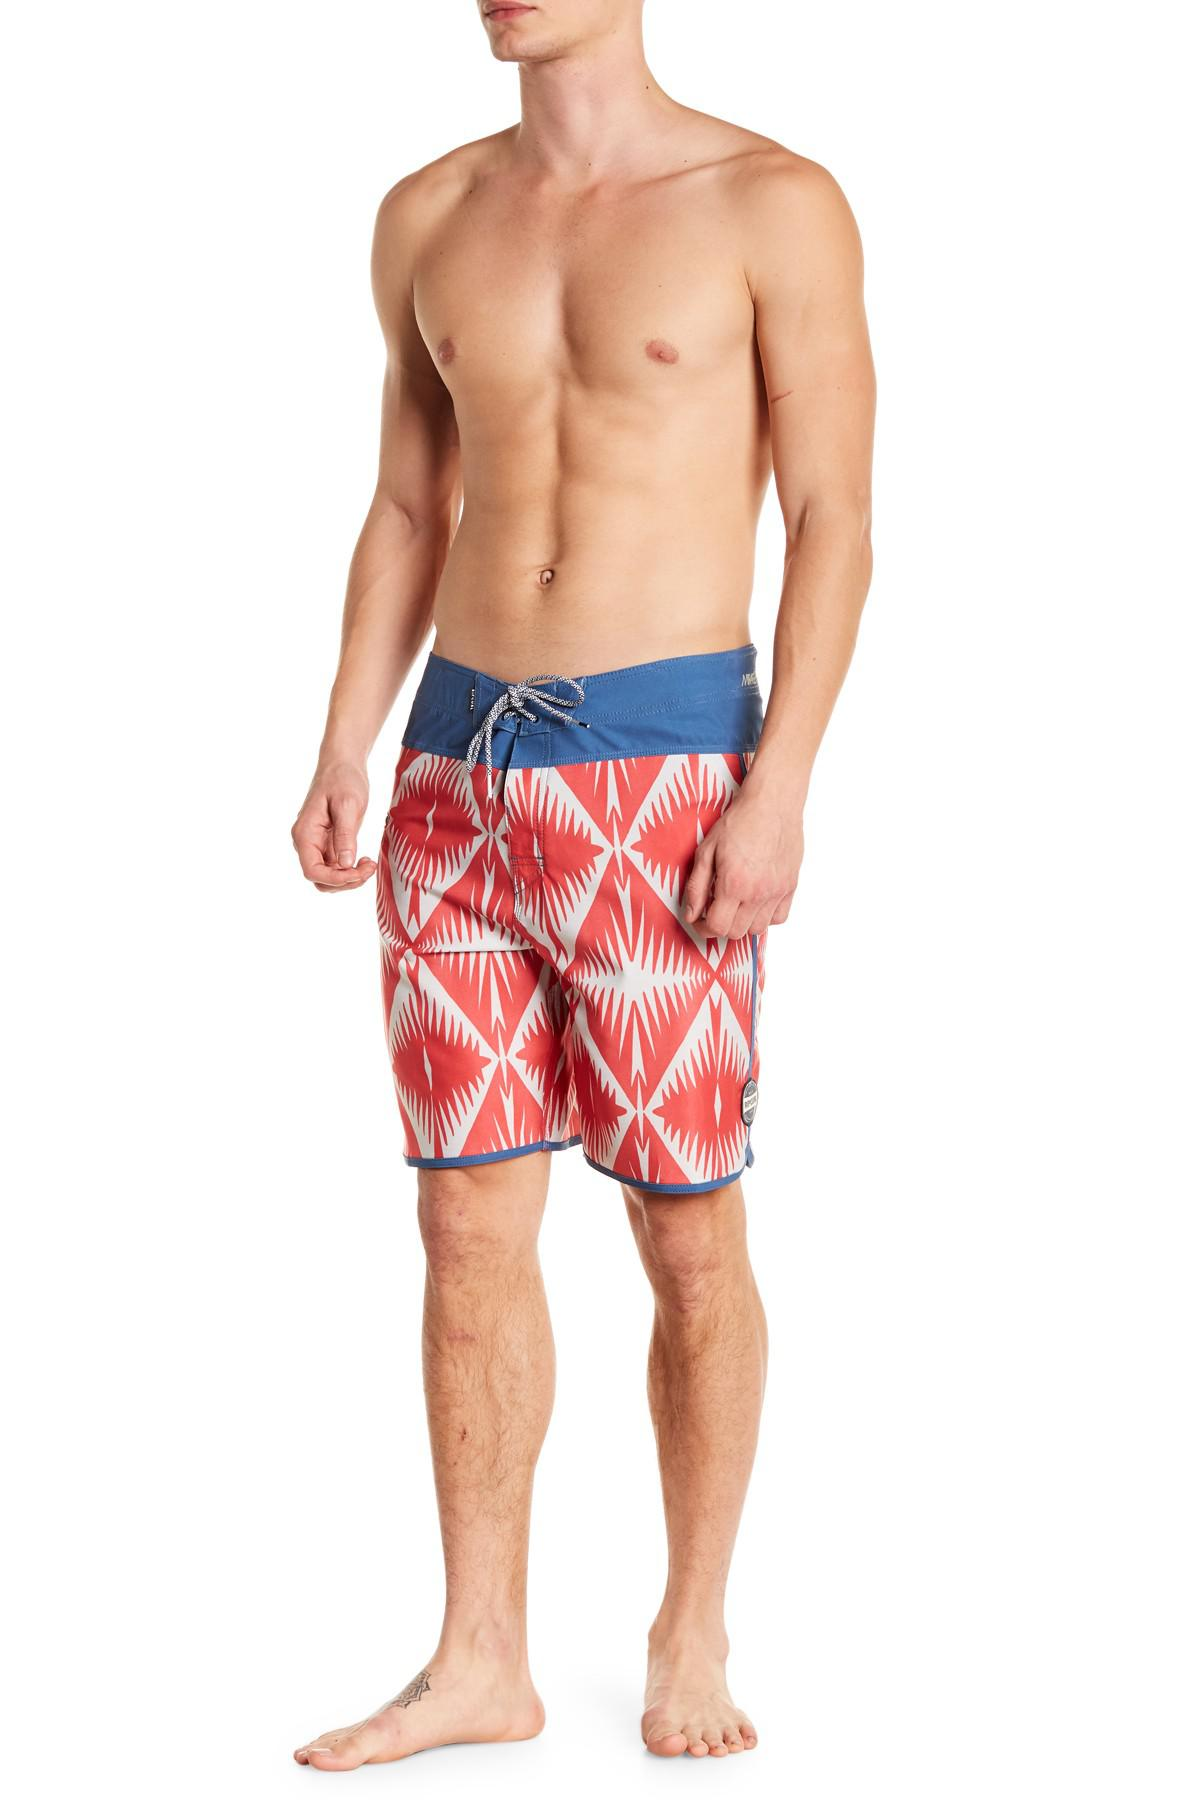 Cheap Real Eastbay Mirage Blends Board Shorts Browse Cheap Price YWNaJr3